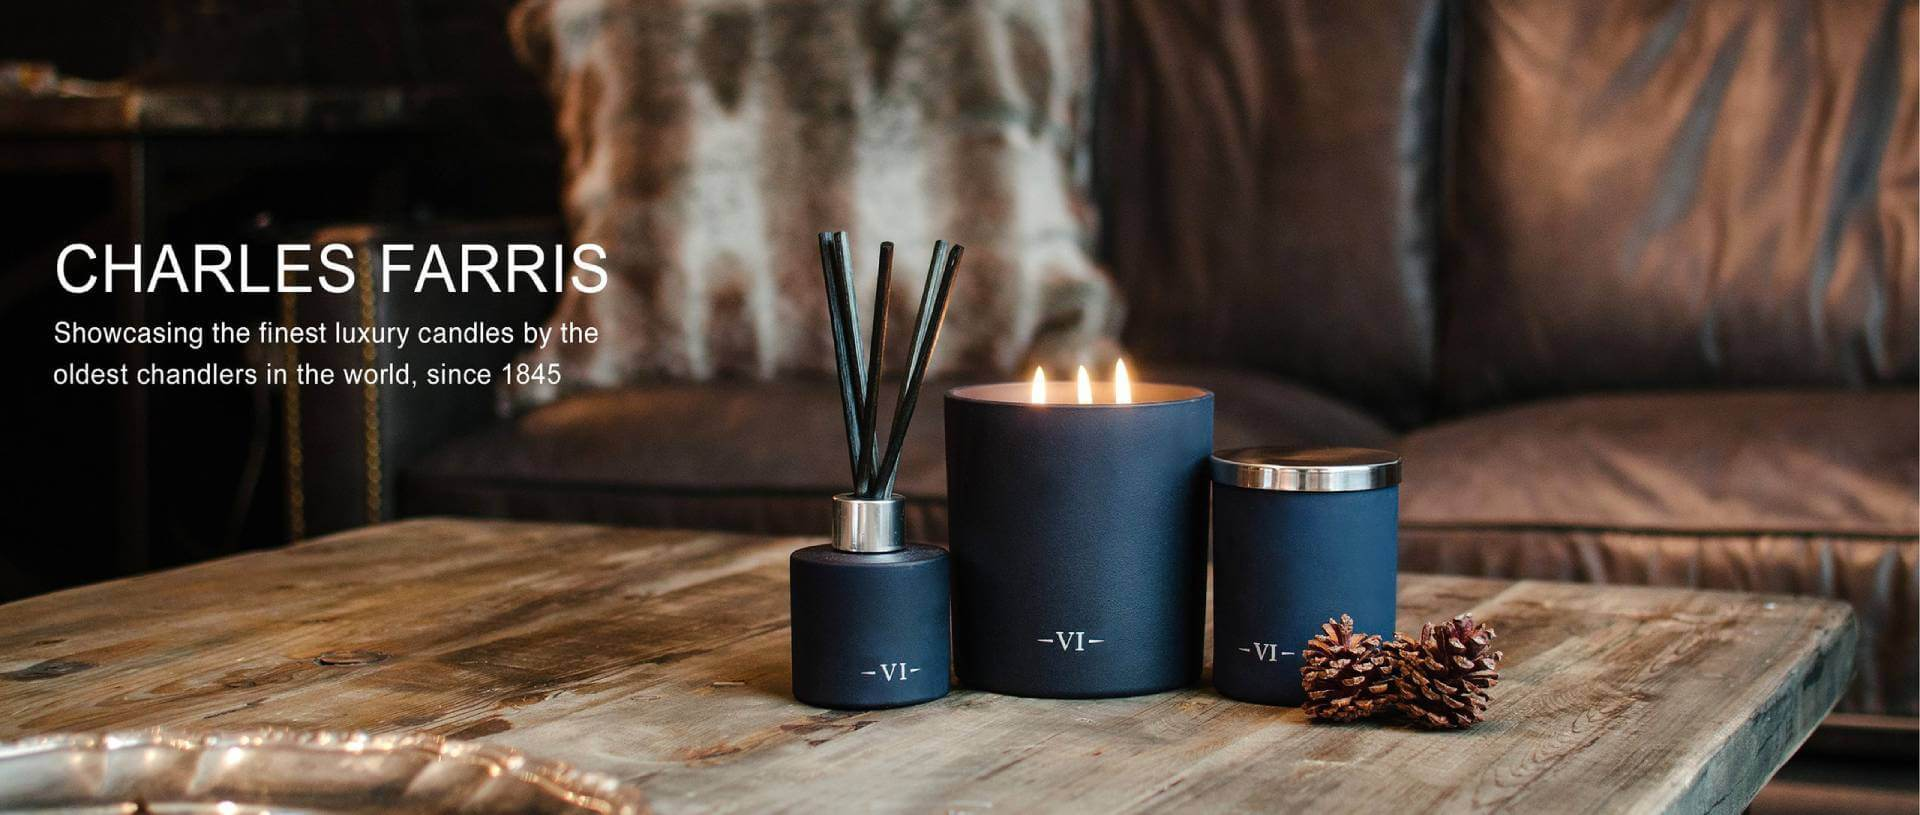 Charles Farris Luxury Designer Candles and Home Fragrance Room Diffusers - Unique and Unusual Gifts for the Home